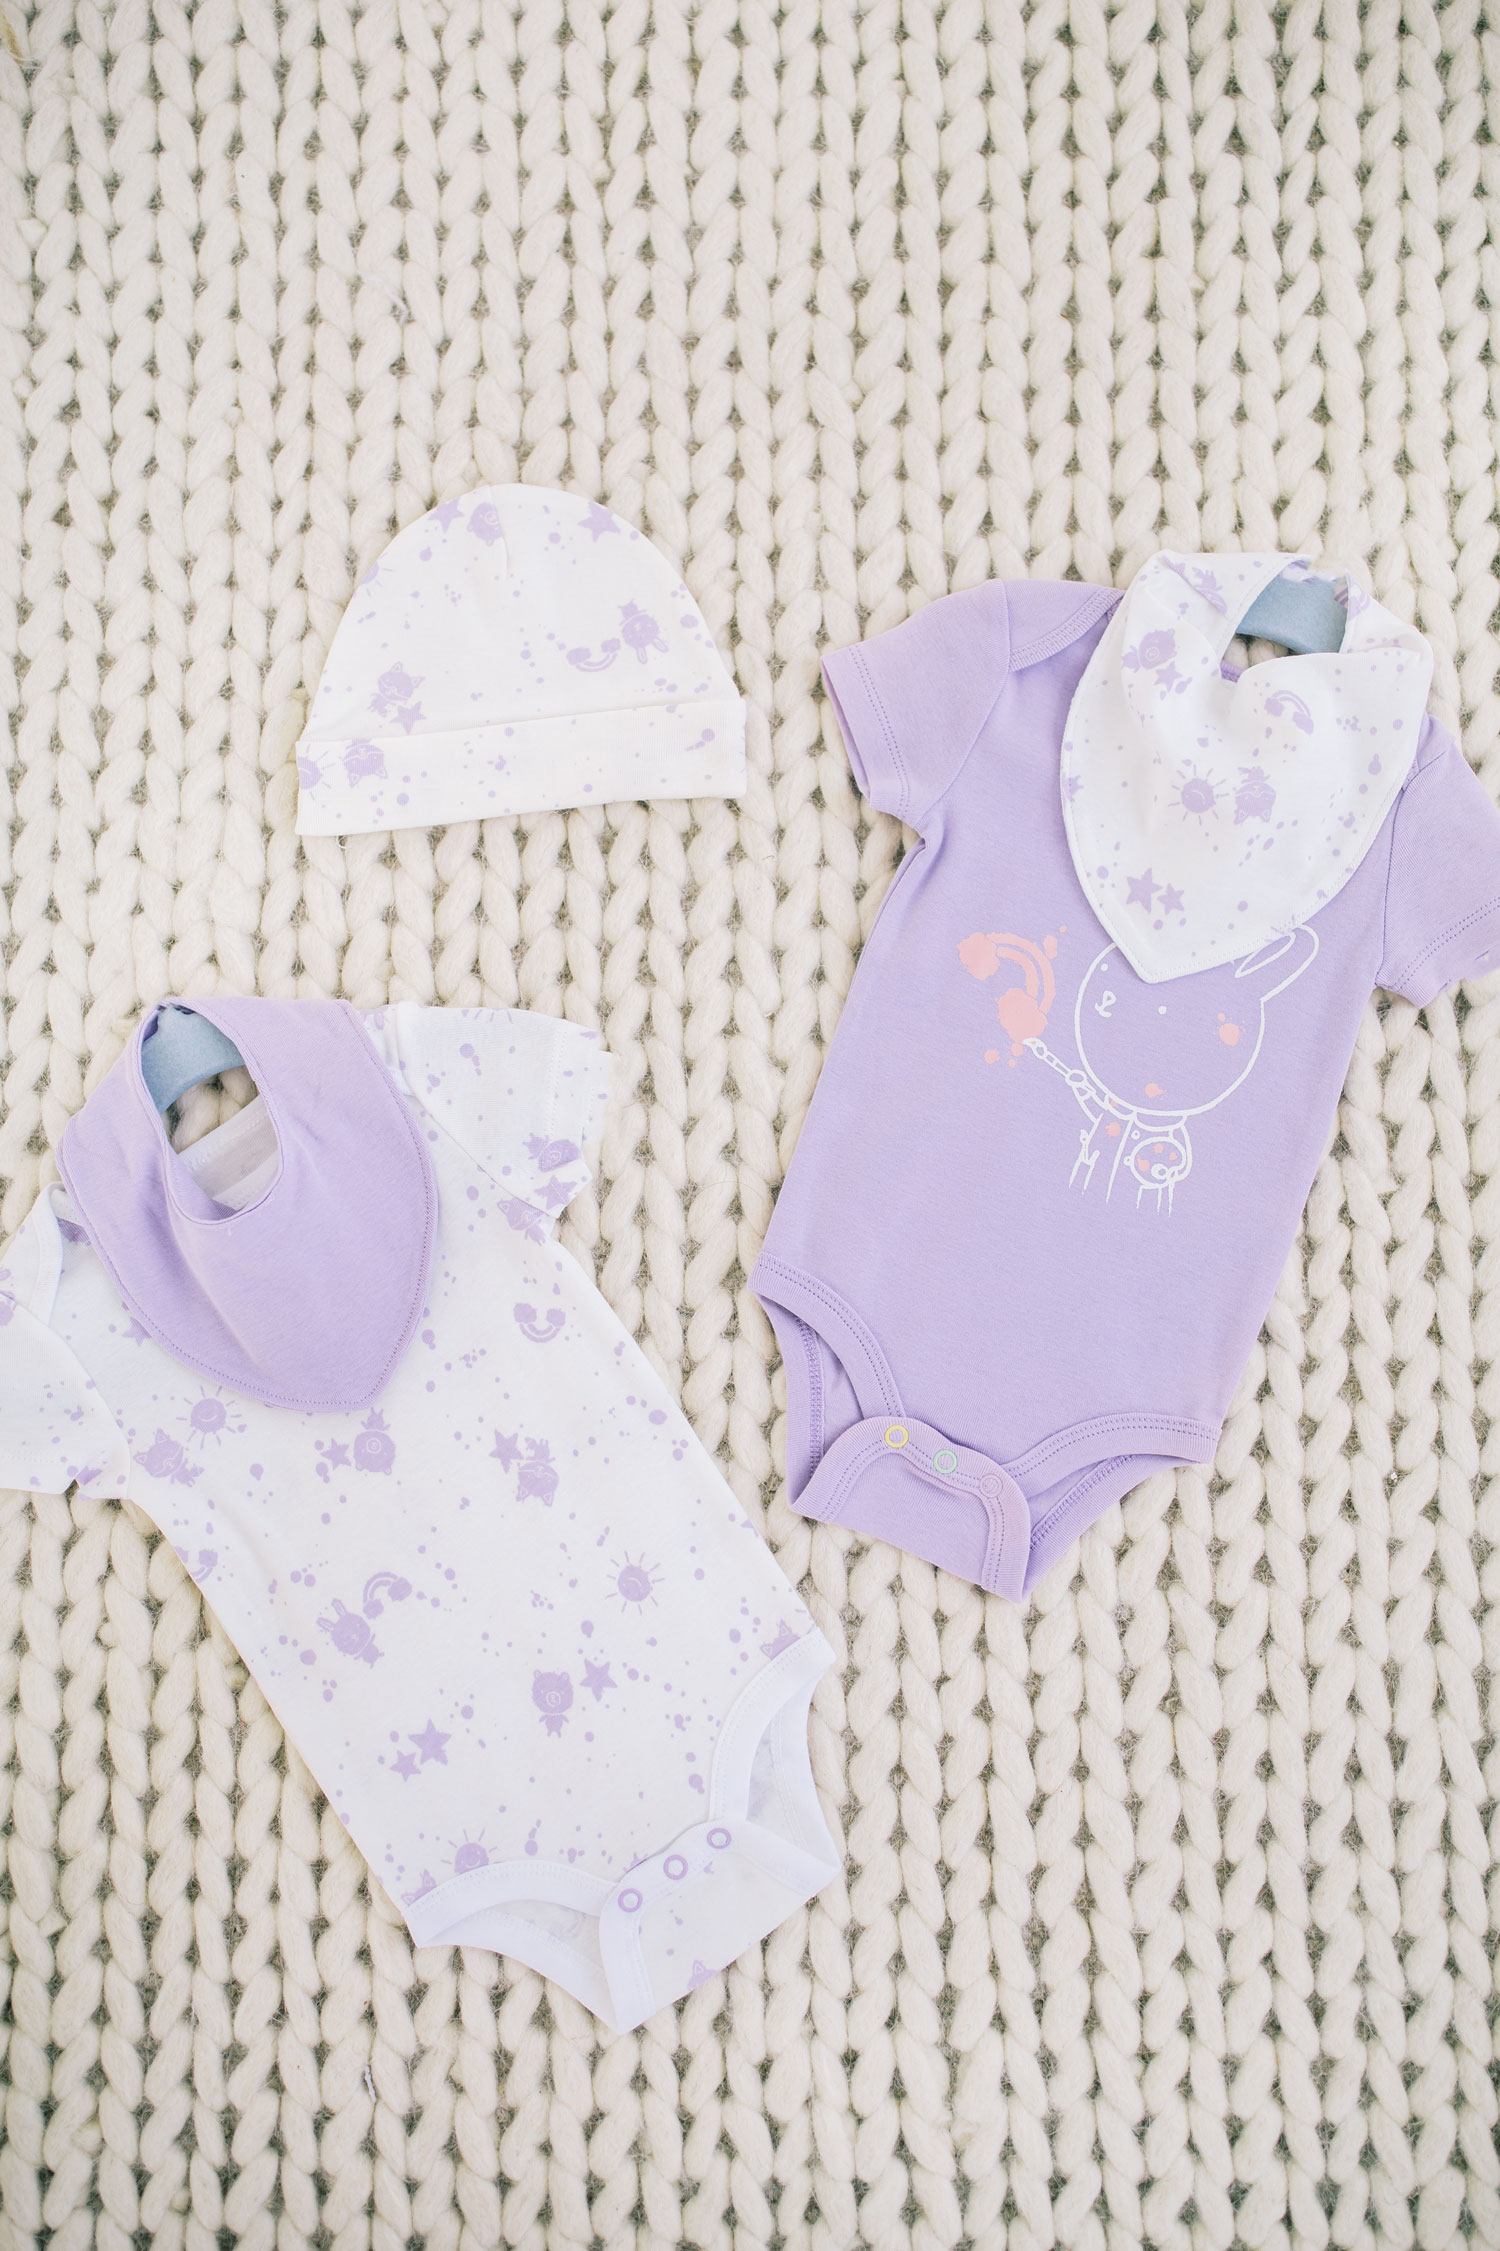 83685330f9533 Aside from the adorable prints and colours, I love the affordable price of  the collection. Newborns grow rapidly, so having clothing that is stylish,  ...